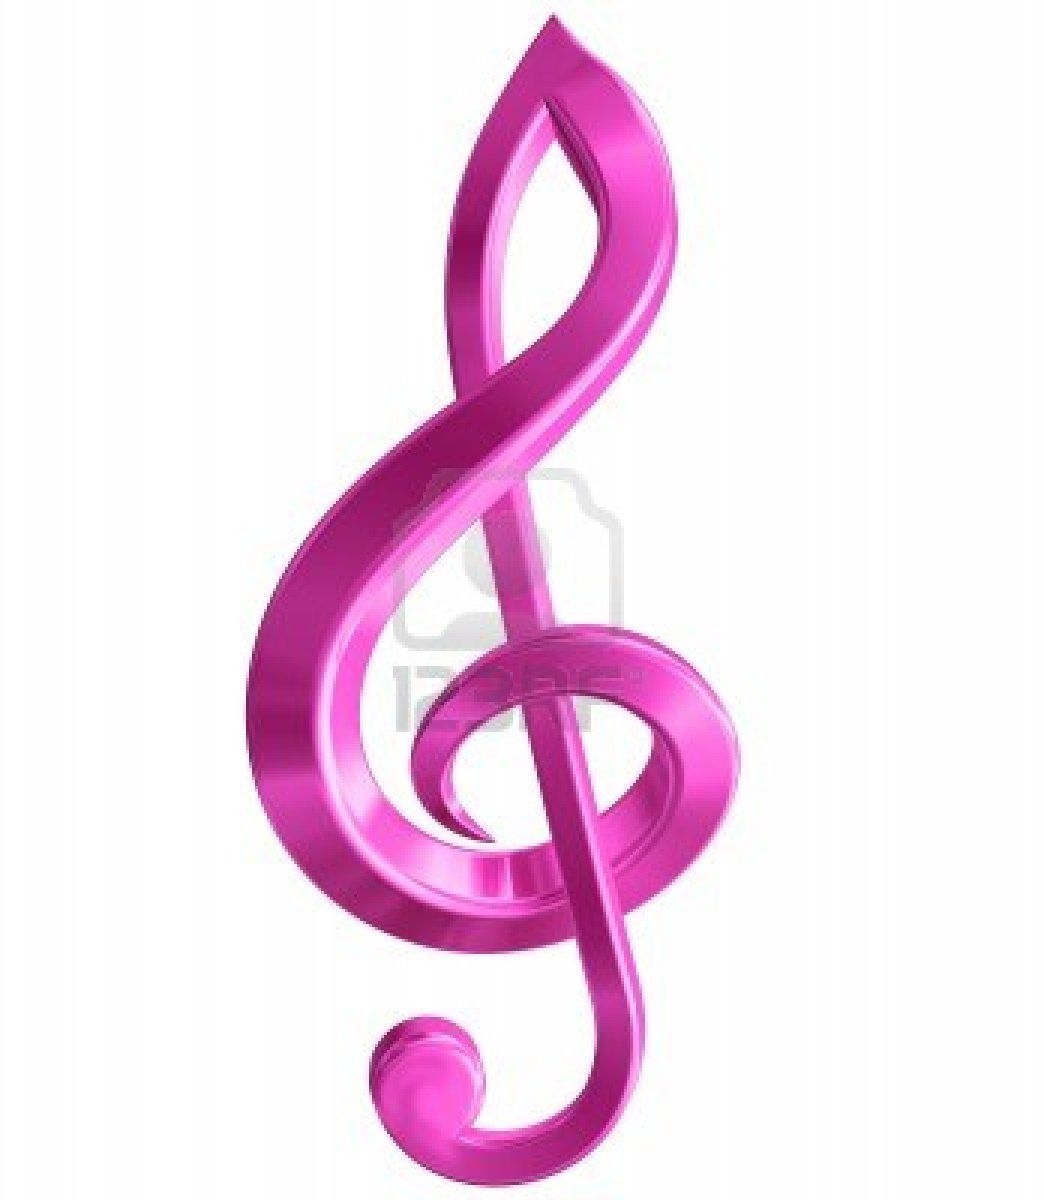 Colorful music notes symbols httpsigilaffirmations colorful music notes symbols httpsigilaffirmations biocorpaavc Gallery